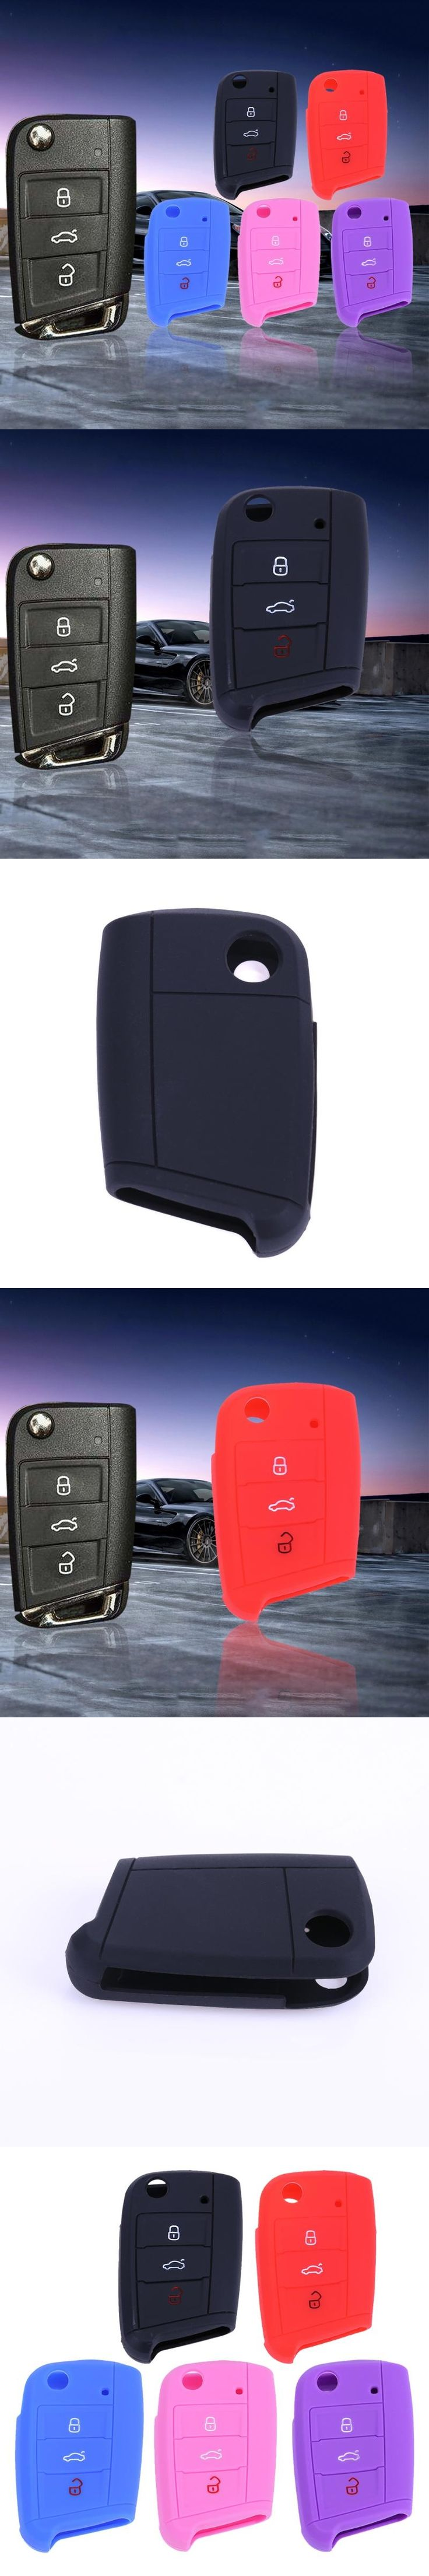 Silicone 3 Button Remote Flip Key Case Fob Protect Cover for VW Golf 3 Colors  Remote Holder Protect High Quality Car Accessorie